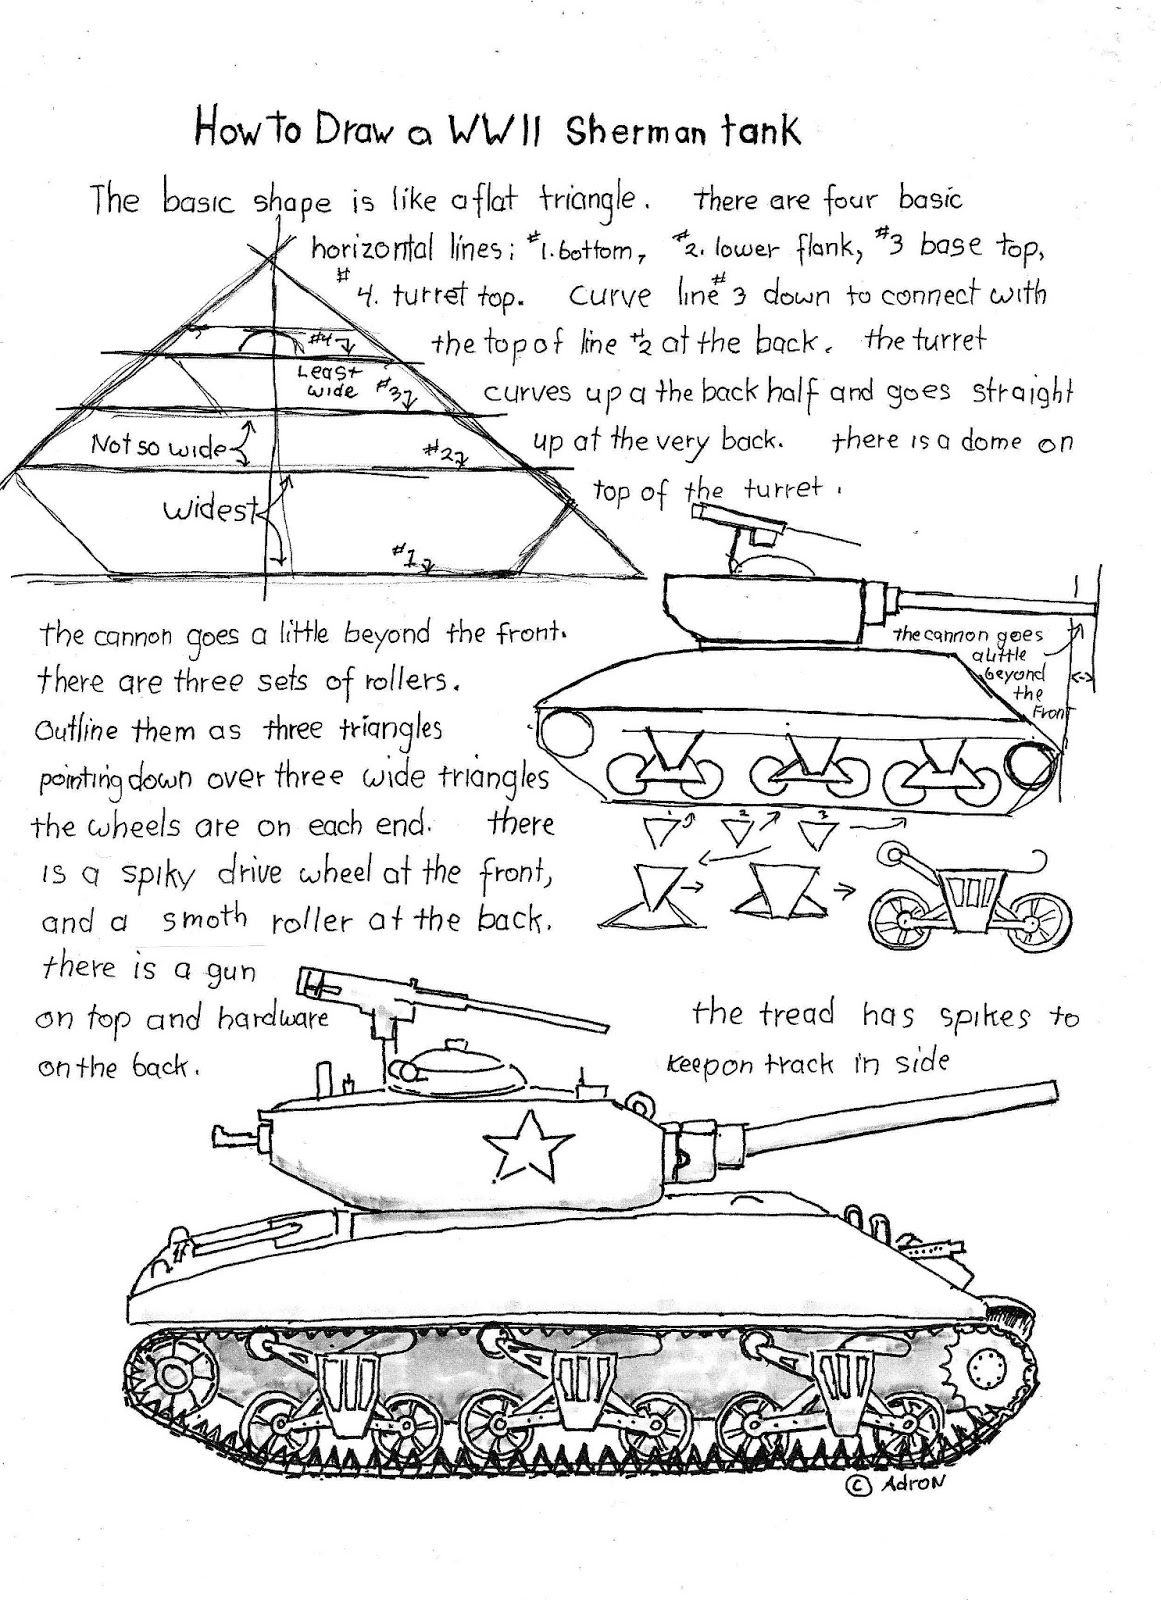 How To Draw A Wwii Sherman Tank Worksheet Read The